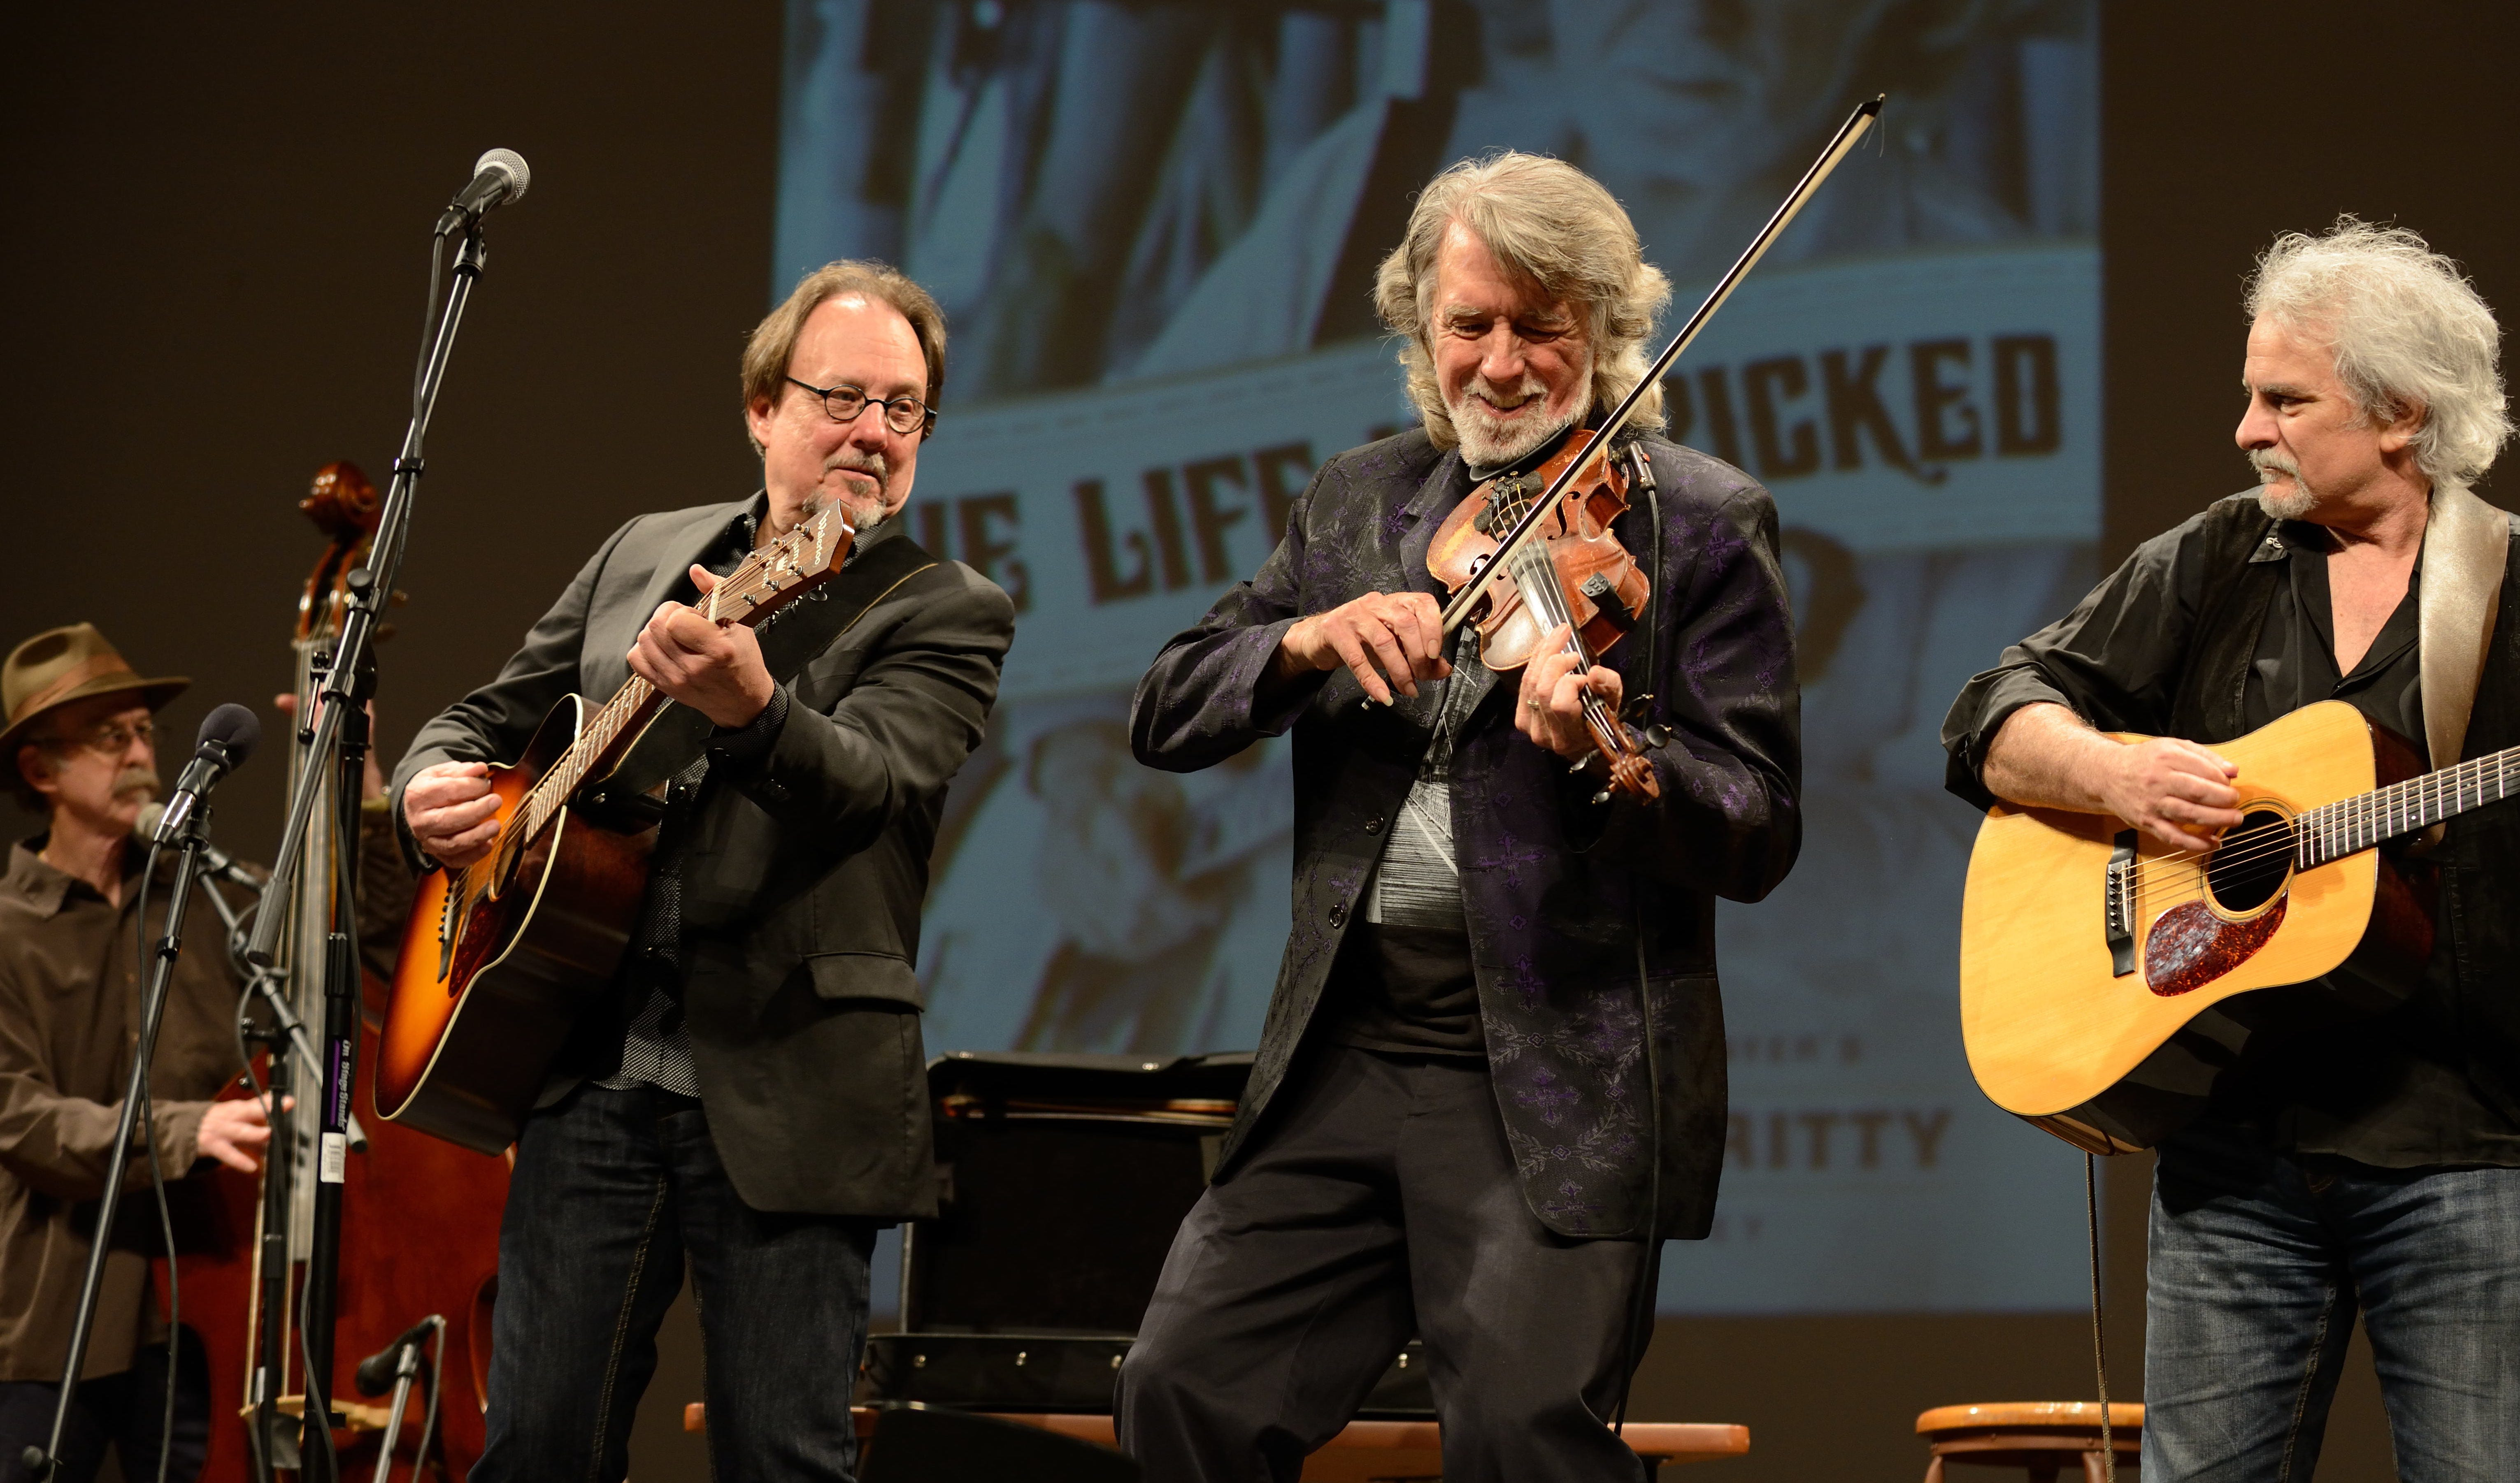 John McEuen, second from right, also plays guitar, banjo and mandolin in addition to the fiddle.